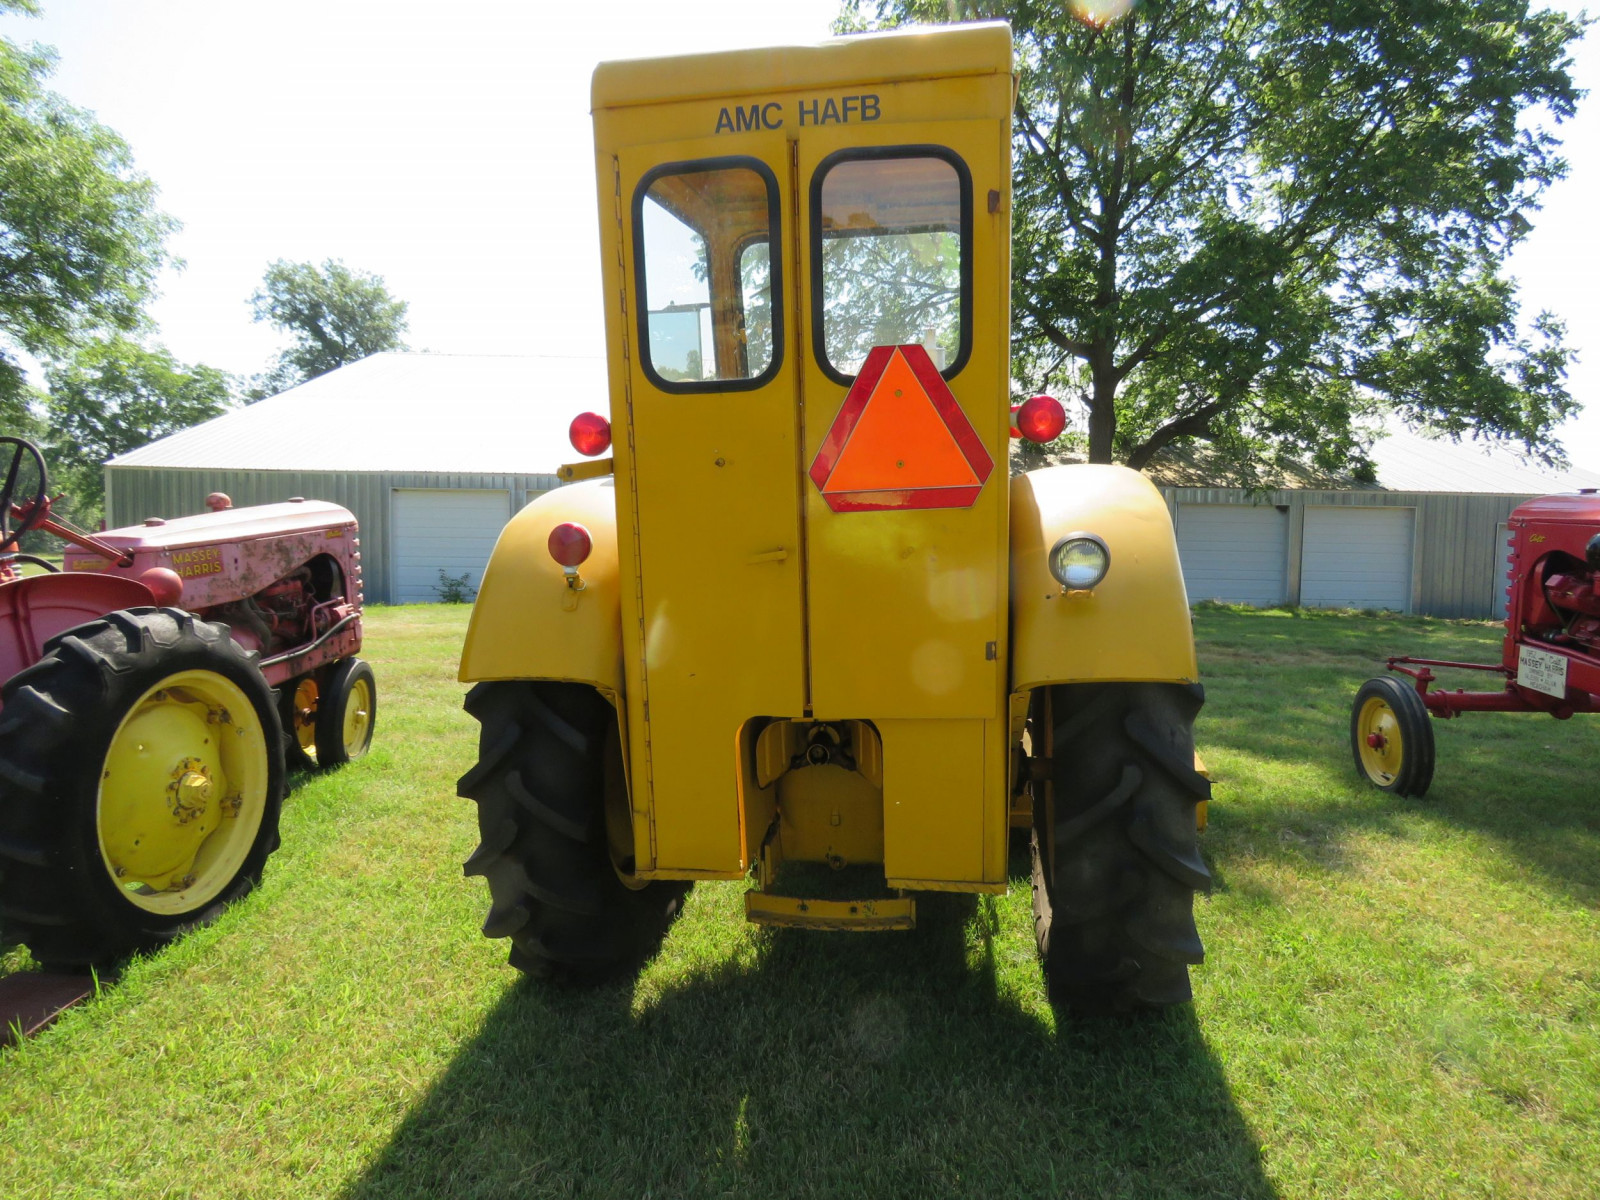 1956 Massey Harris 333 Tractor with Sabre Magnetic Sweeper - Image 7